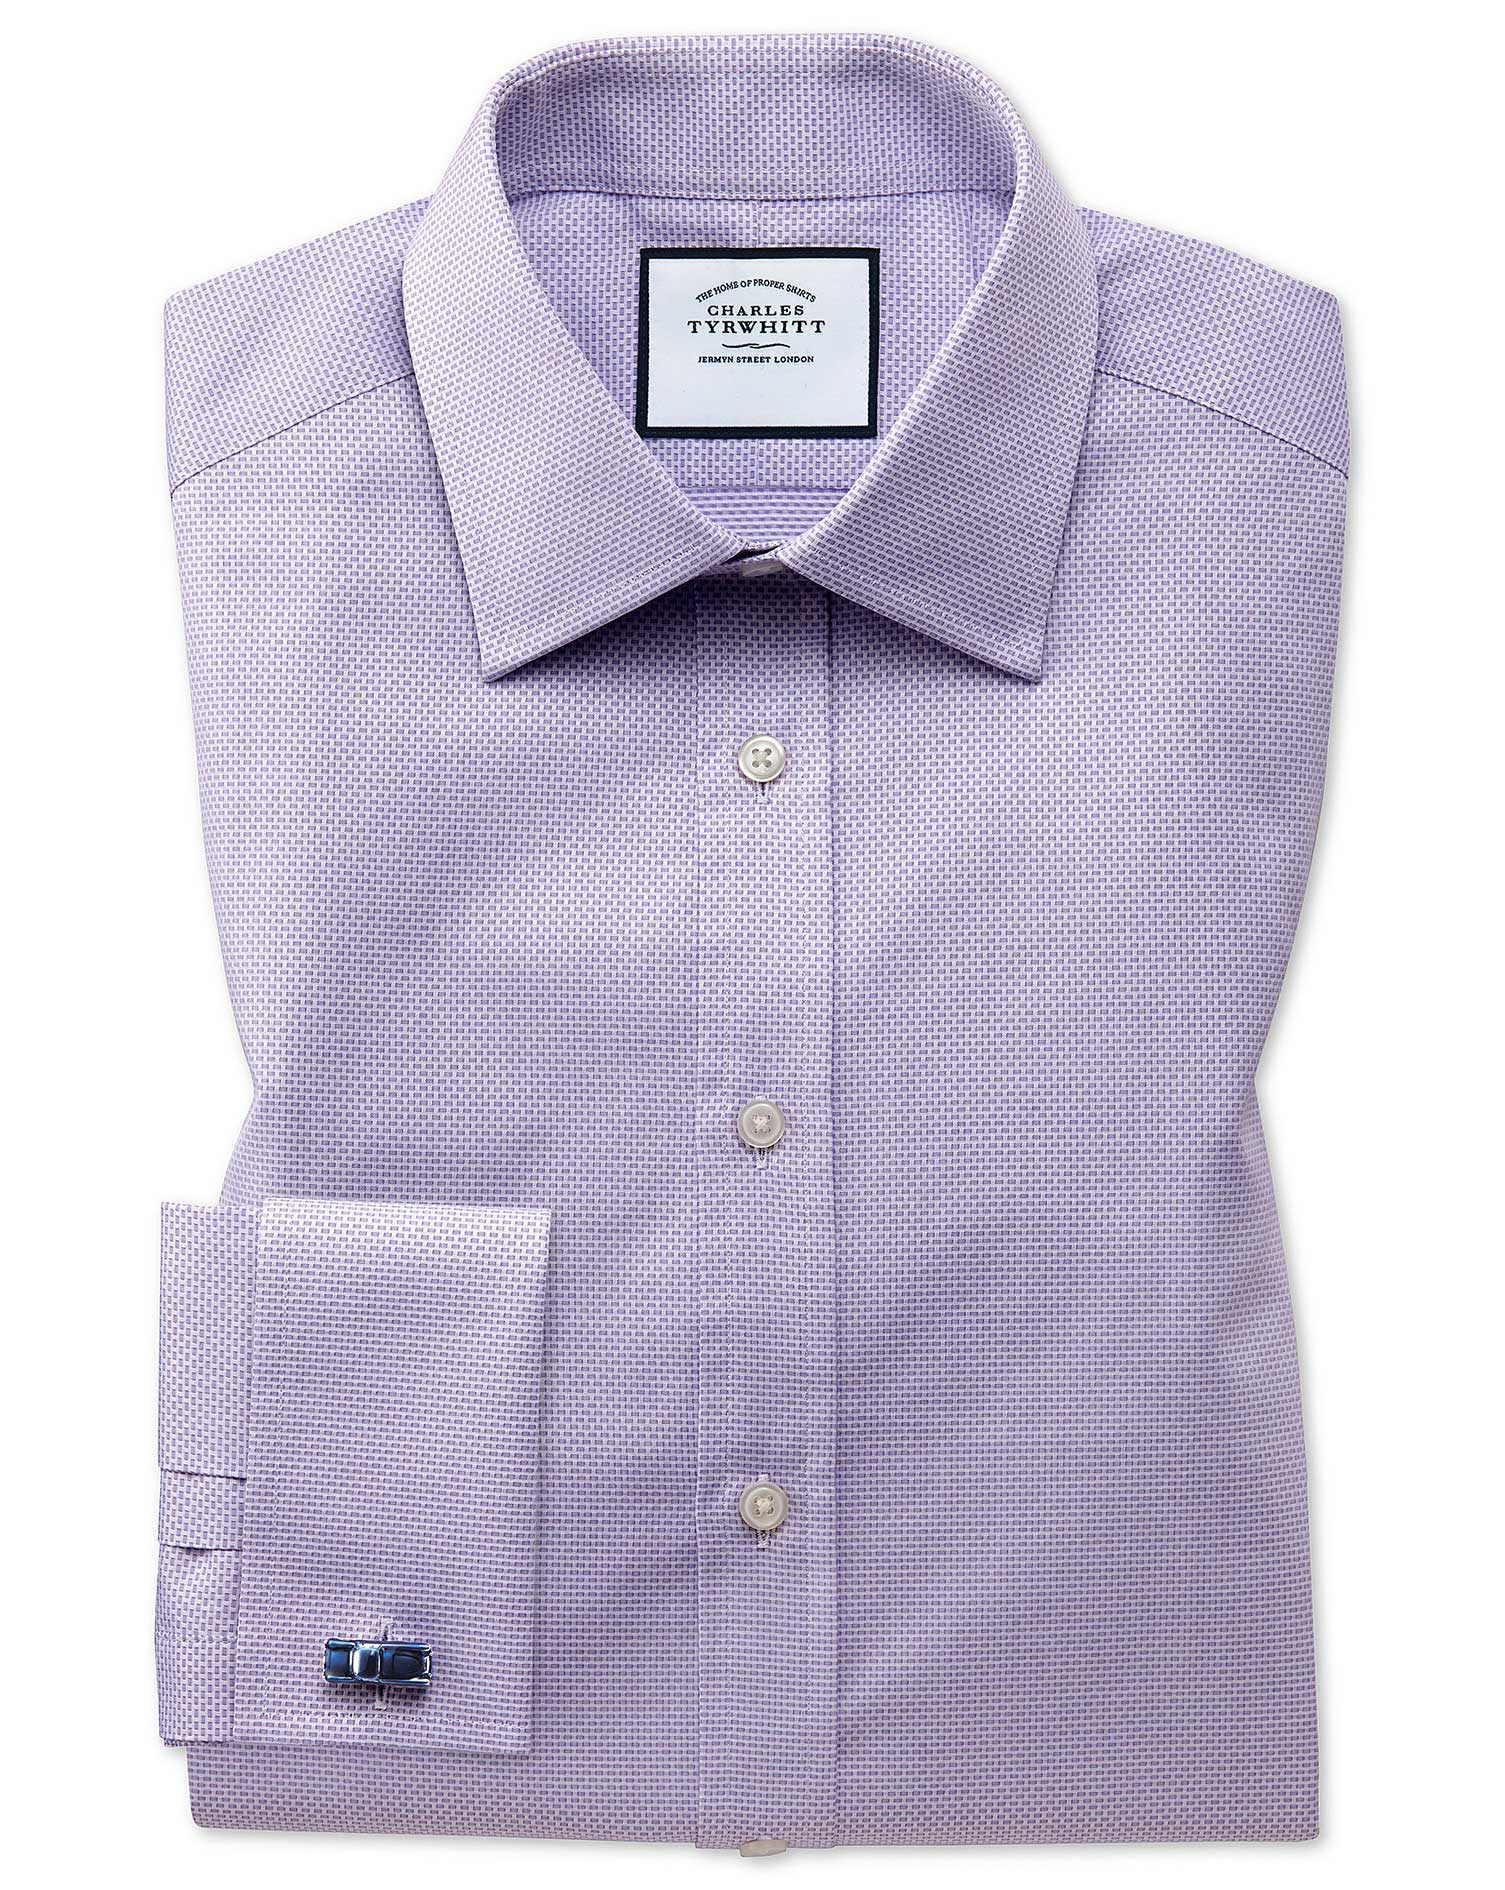 Classic Fit Lilac Cube Weave Egyptian Cotton Formal Shirt Single Cuff Size 18/37 by Charles Tyrwhitt